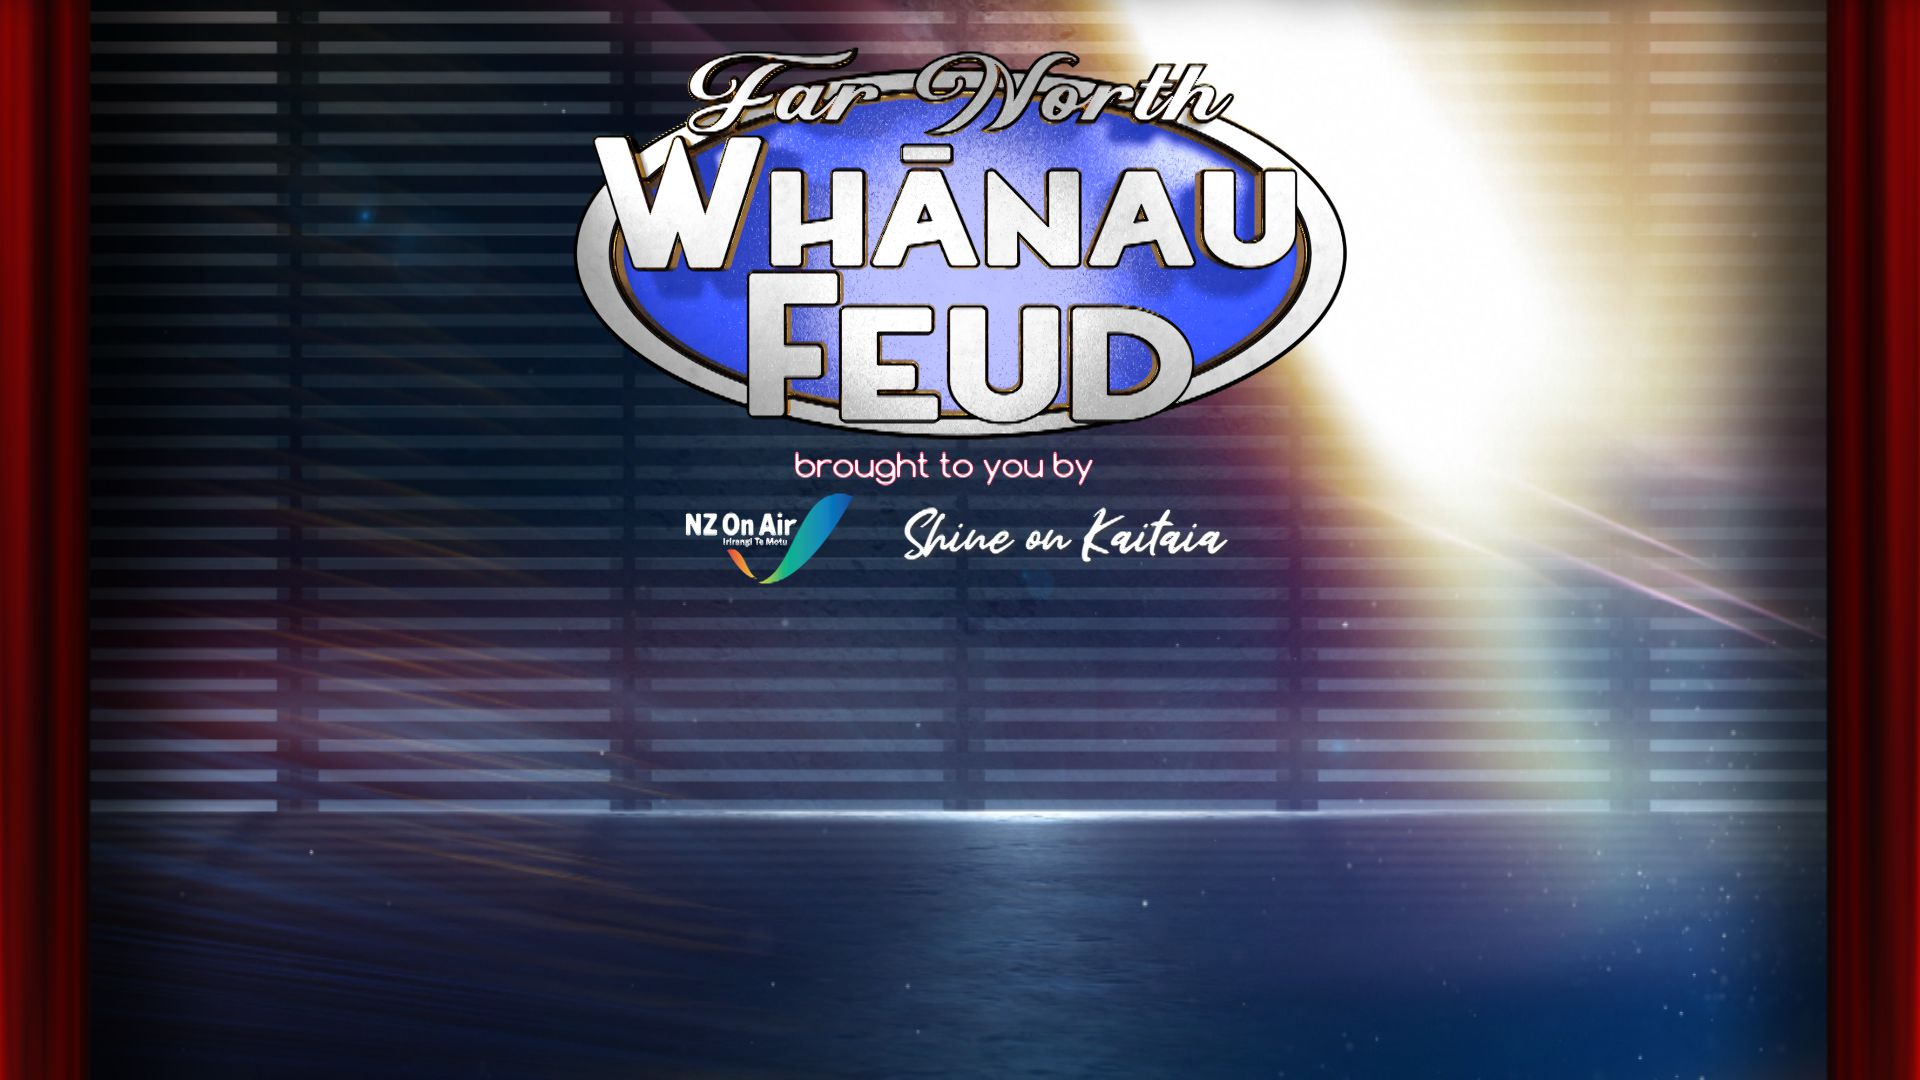 Far North's Whānau Feud